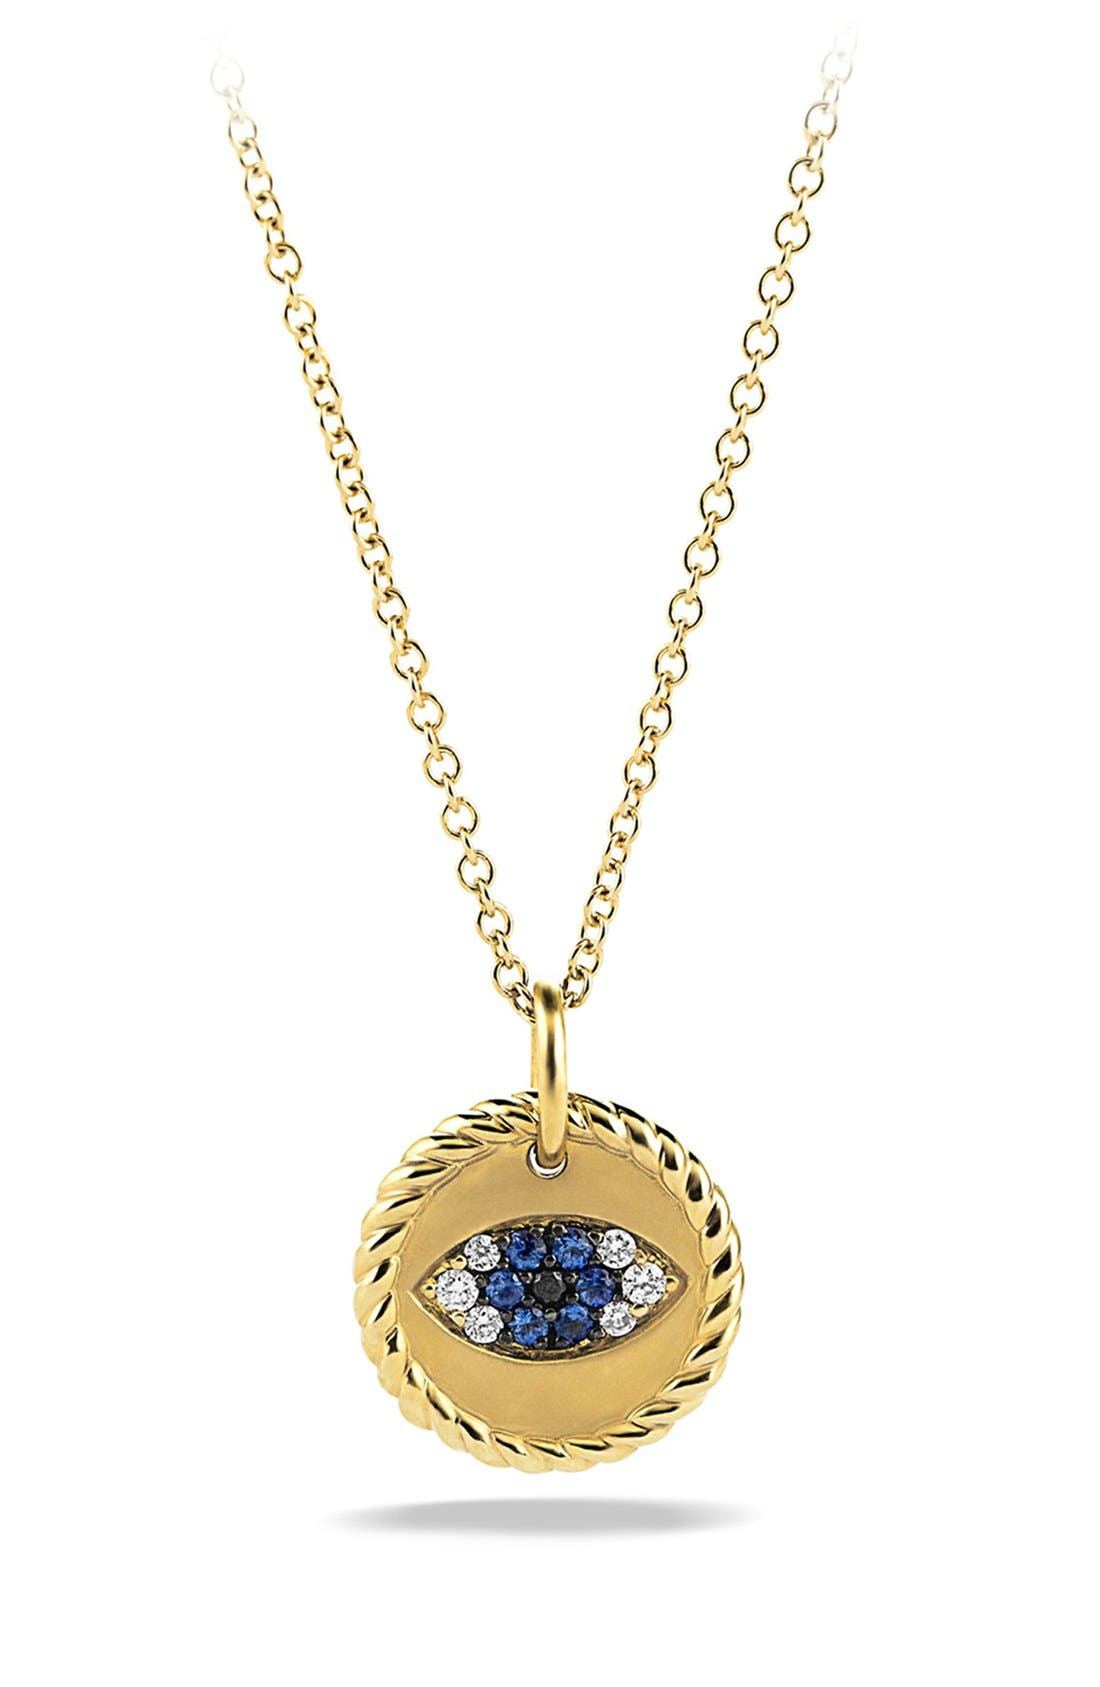 'Cable Collectibles' Evil Eye Charm Necklace with Blue Sapphire, Black Diamonds and Diamonds in Gold,                         Main,                         color, BLUE SAPPHIRE/ DIAMOND